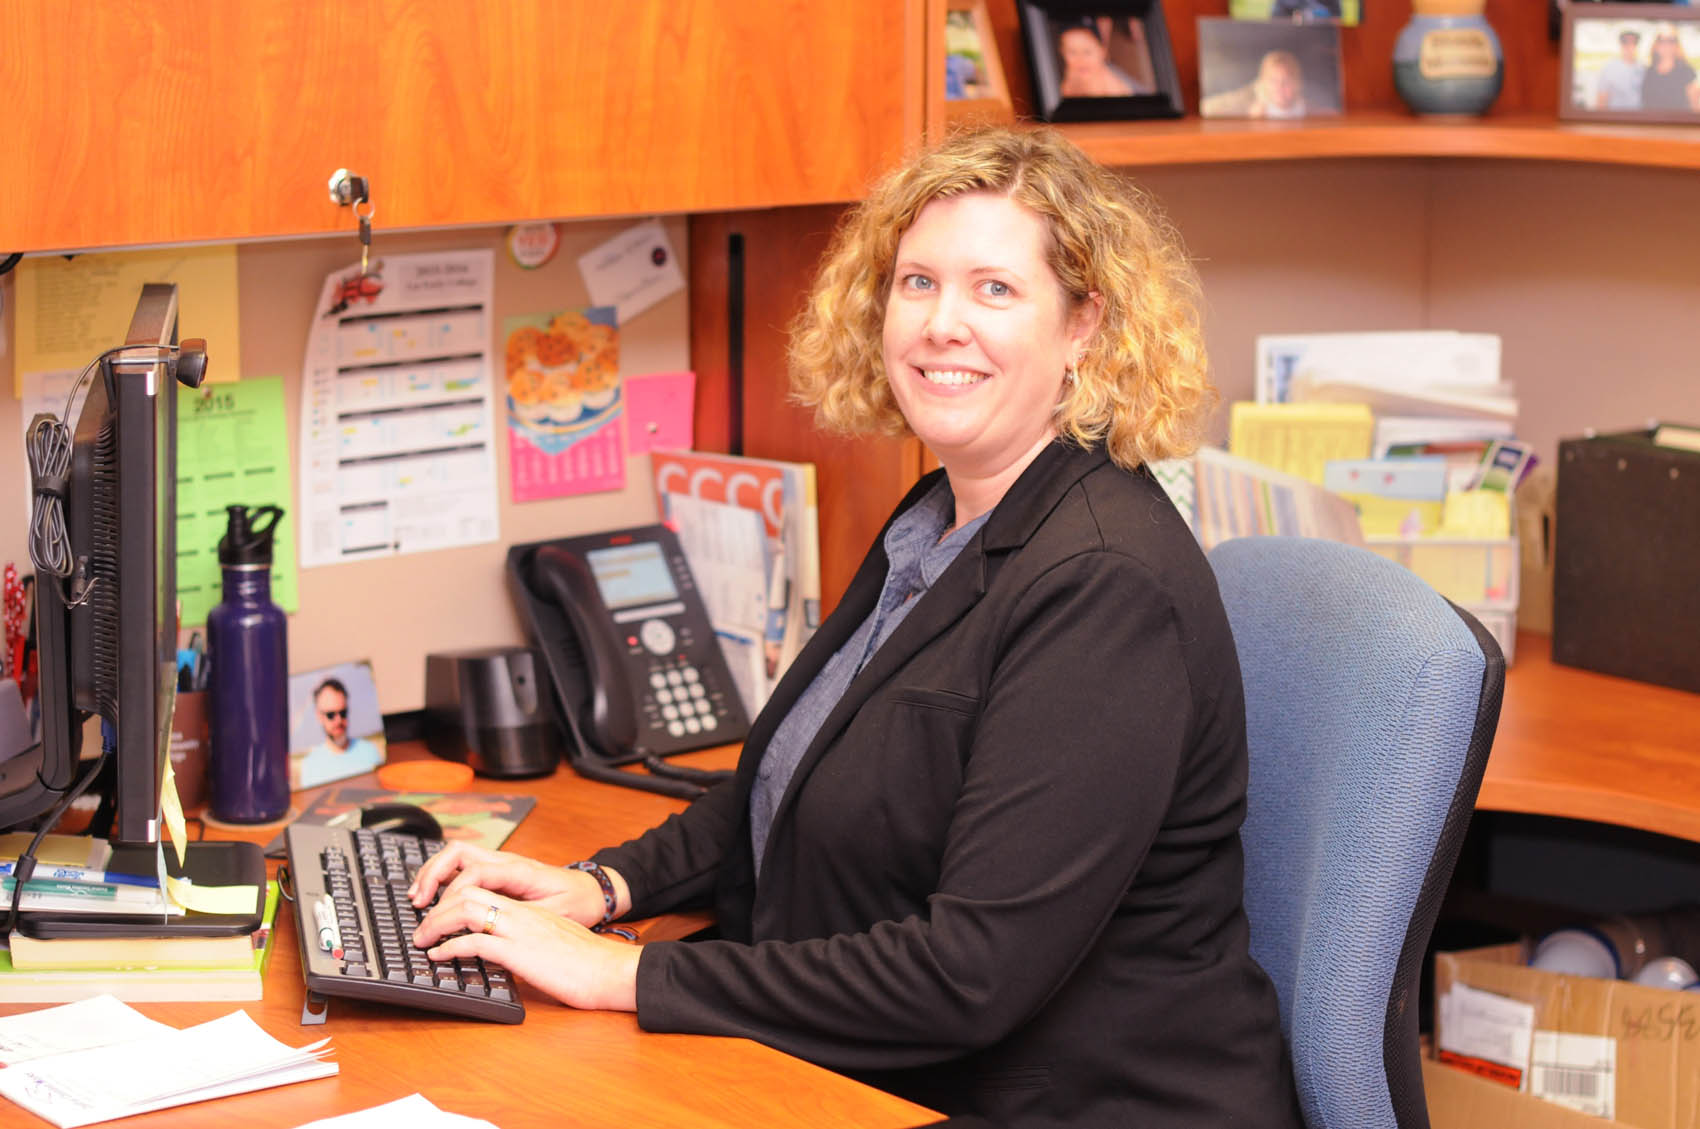 Read the full story, Virginia Mallory named CCCC's Staff Member of the Year